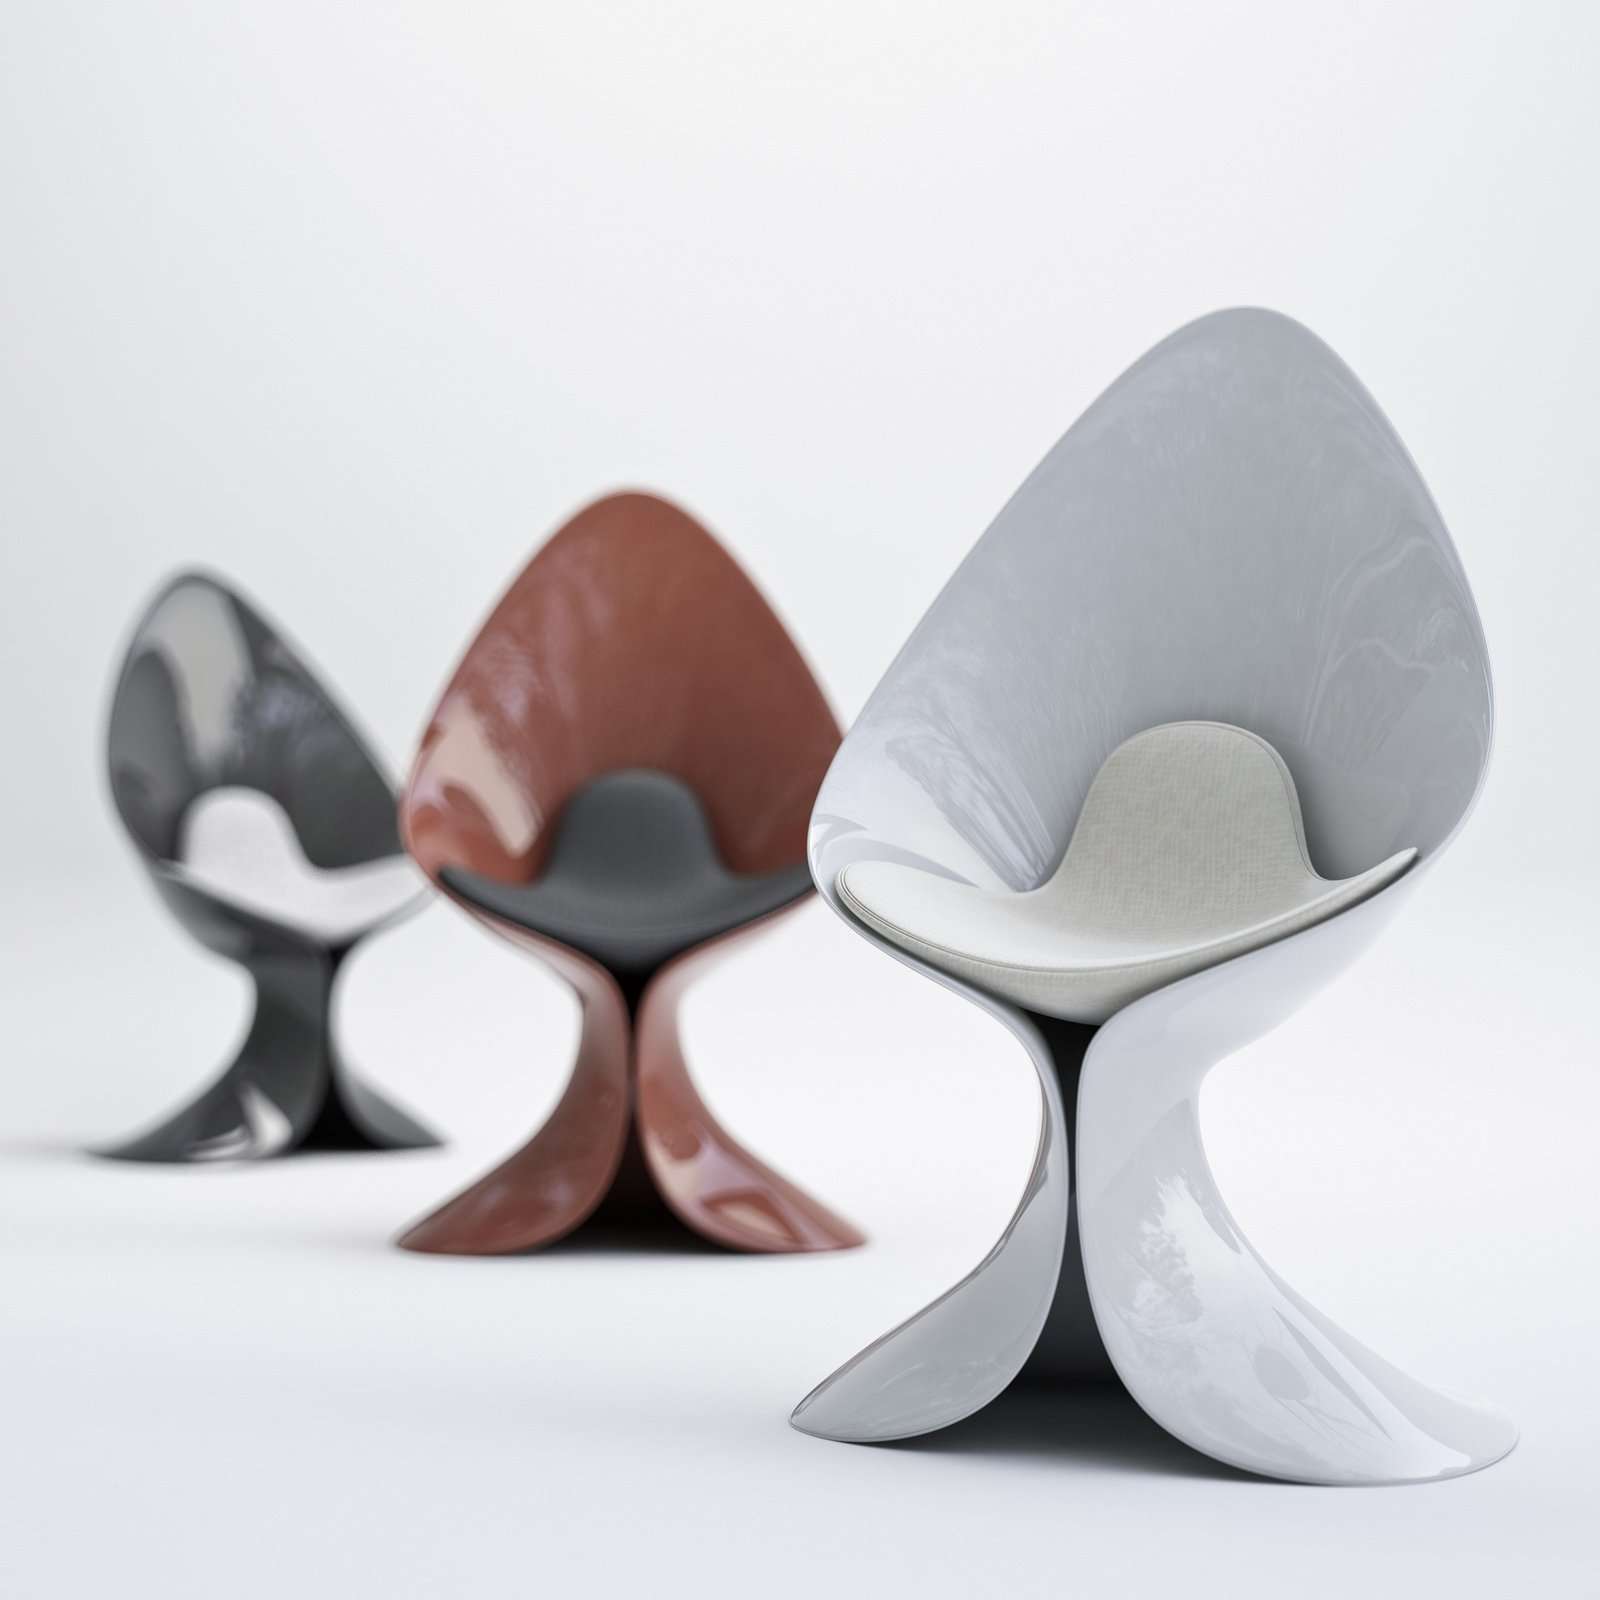 Genial View In Gallery Calla Lily Chair By Zad Italy Dangerous Curves 1 Thumb  630xauto 50851 Calla Lily Chair By